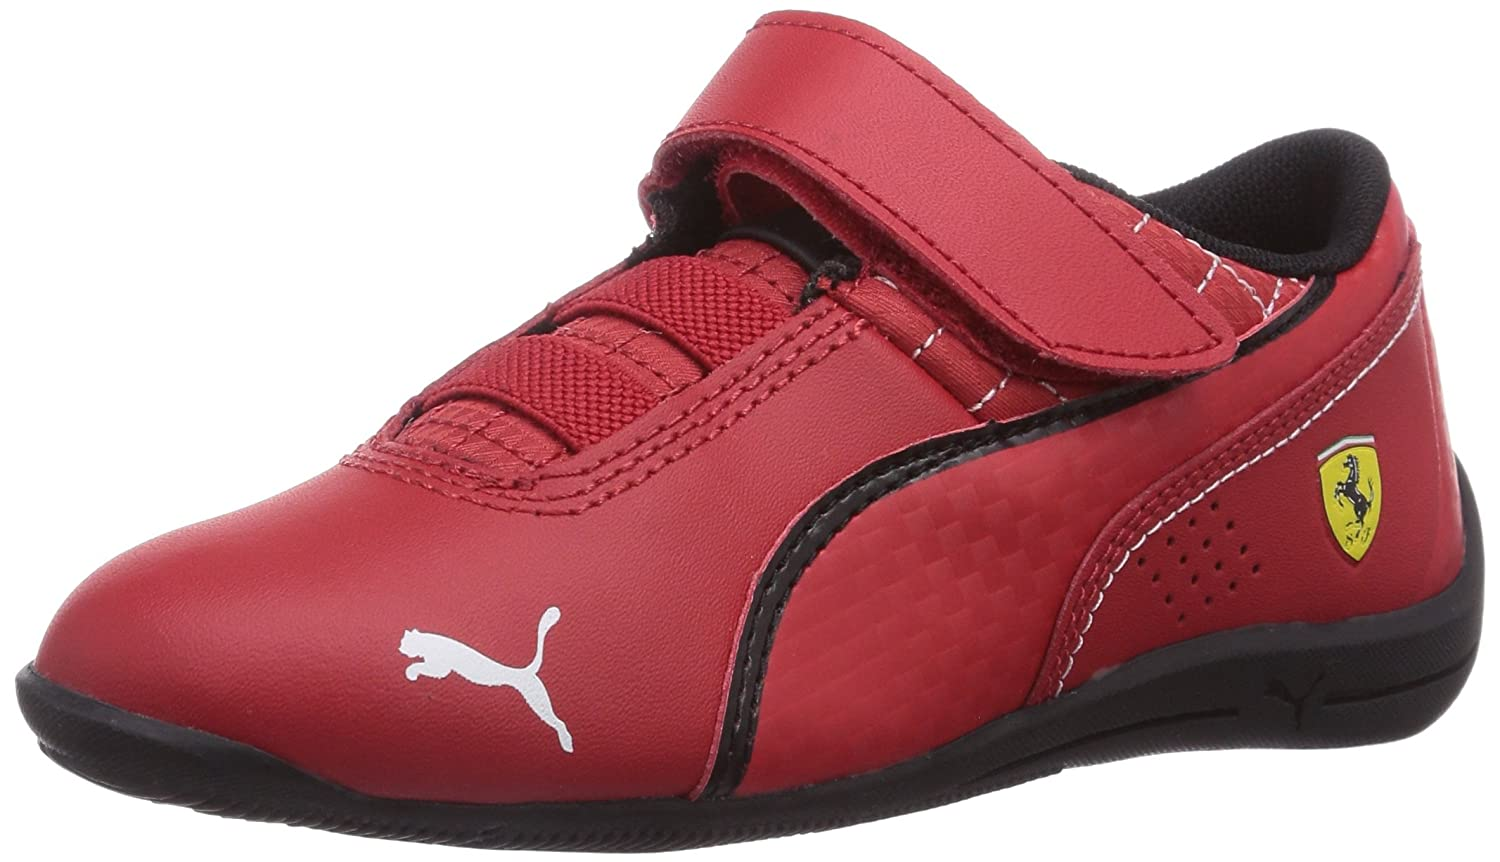 puma ladies shoes. puma girl\u0027s drift cat 6 l sf v kids rosso corsa-rosso corsa-bk leather chinese shoes - 13 uk: buy online at low prices in india amazon.in ladies